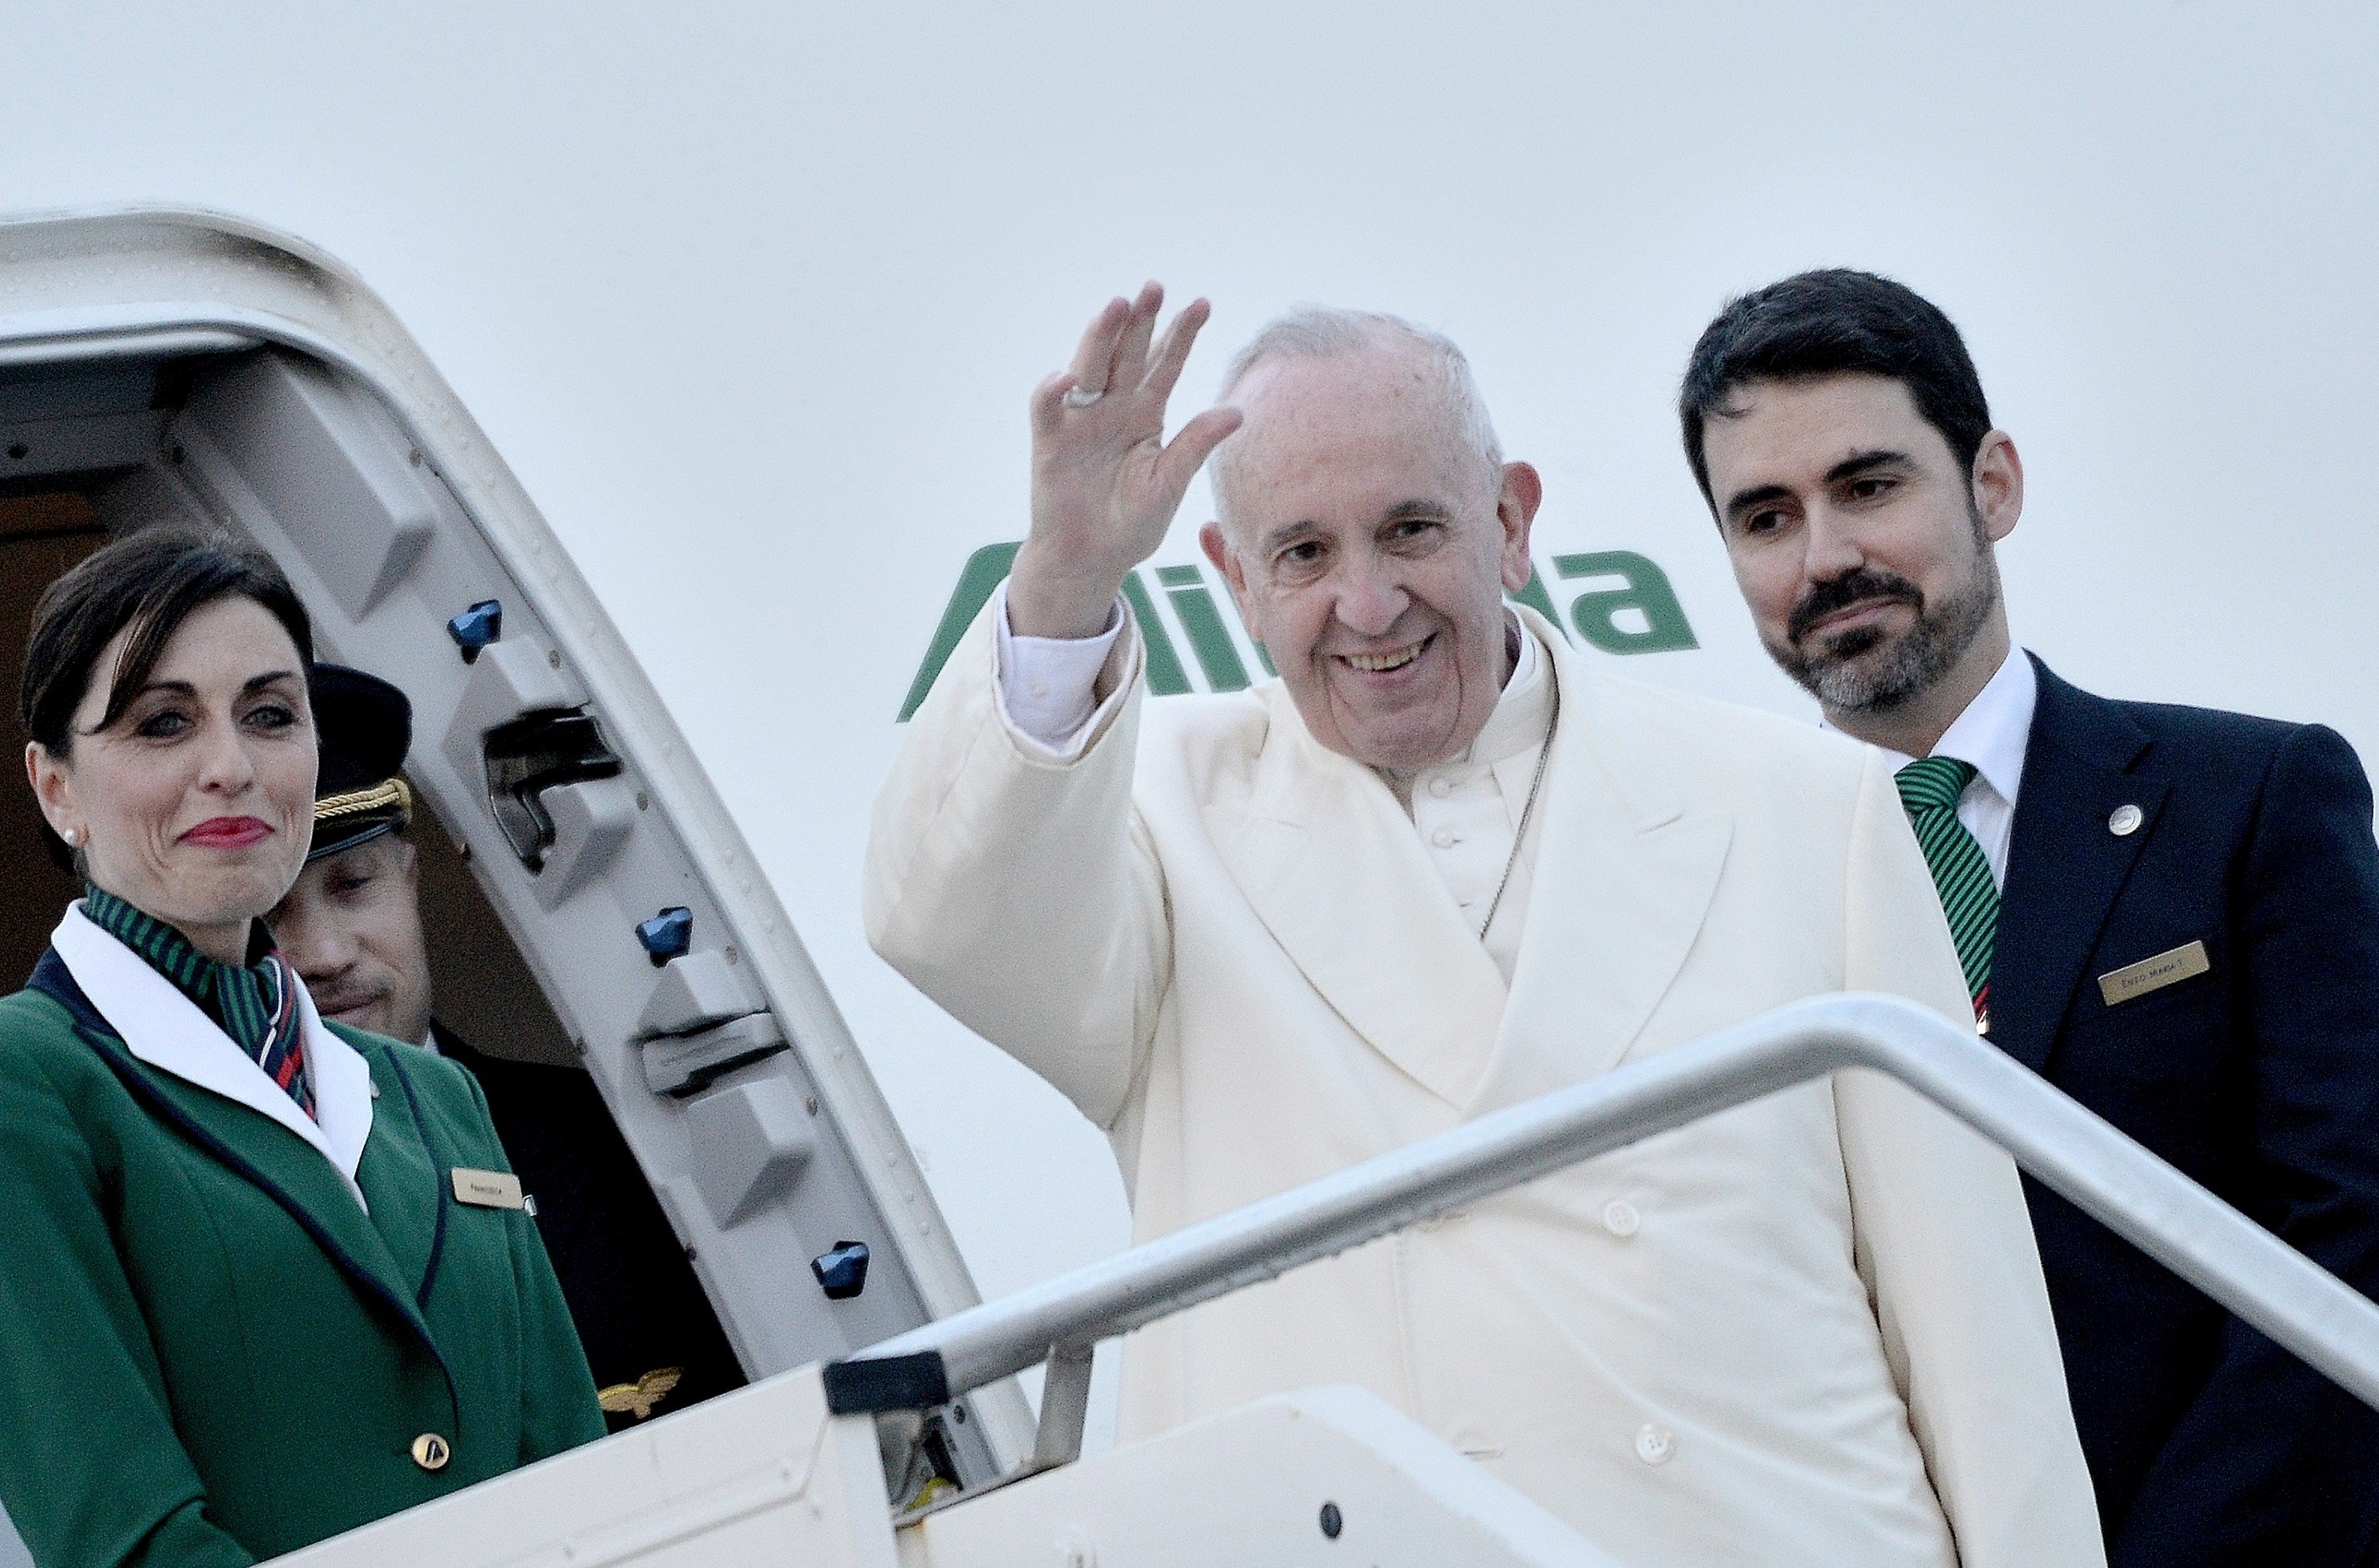 Pope  Francis at Rome's Fiumicino airport on his way to Mexico for a week-long trip, on Feb. 12, 2016. He is scheduled to stop in Cuba for an historical meeting with Russian Orthodox Patriarch Kirill.